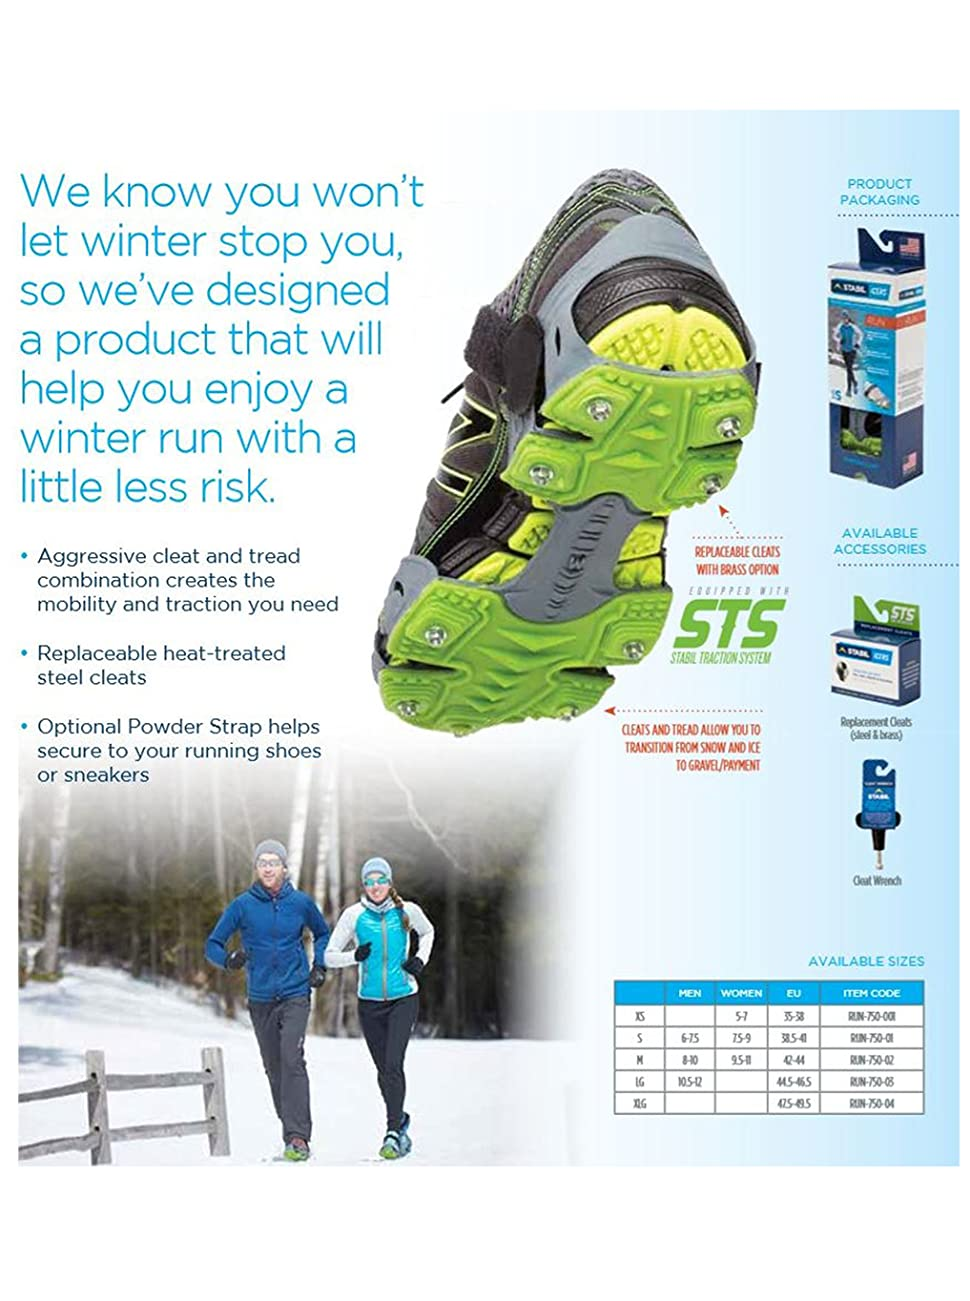 Stabil Icers Ice Cleats Winter Snow And Ice Cleats Made In USA